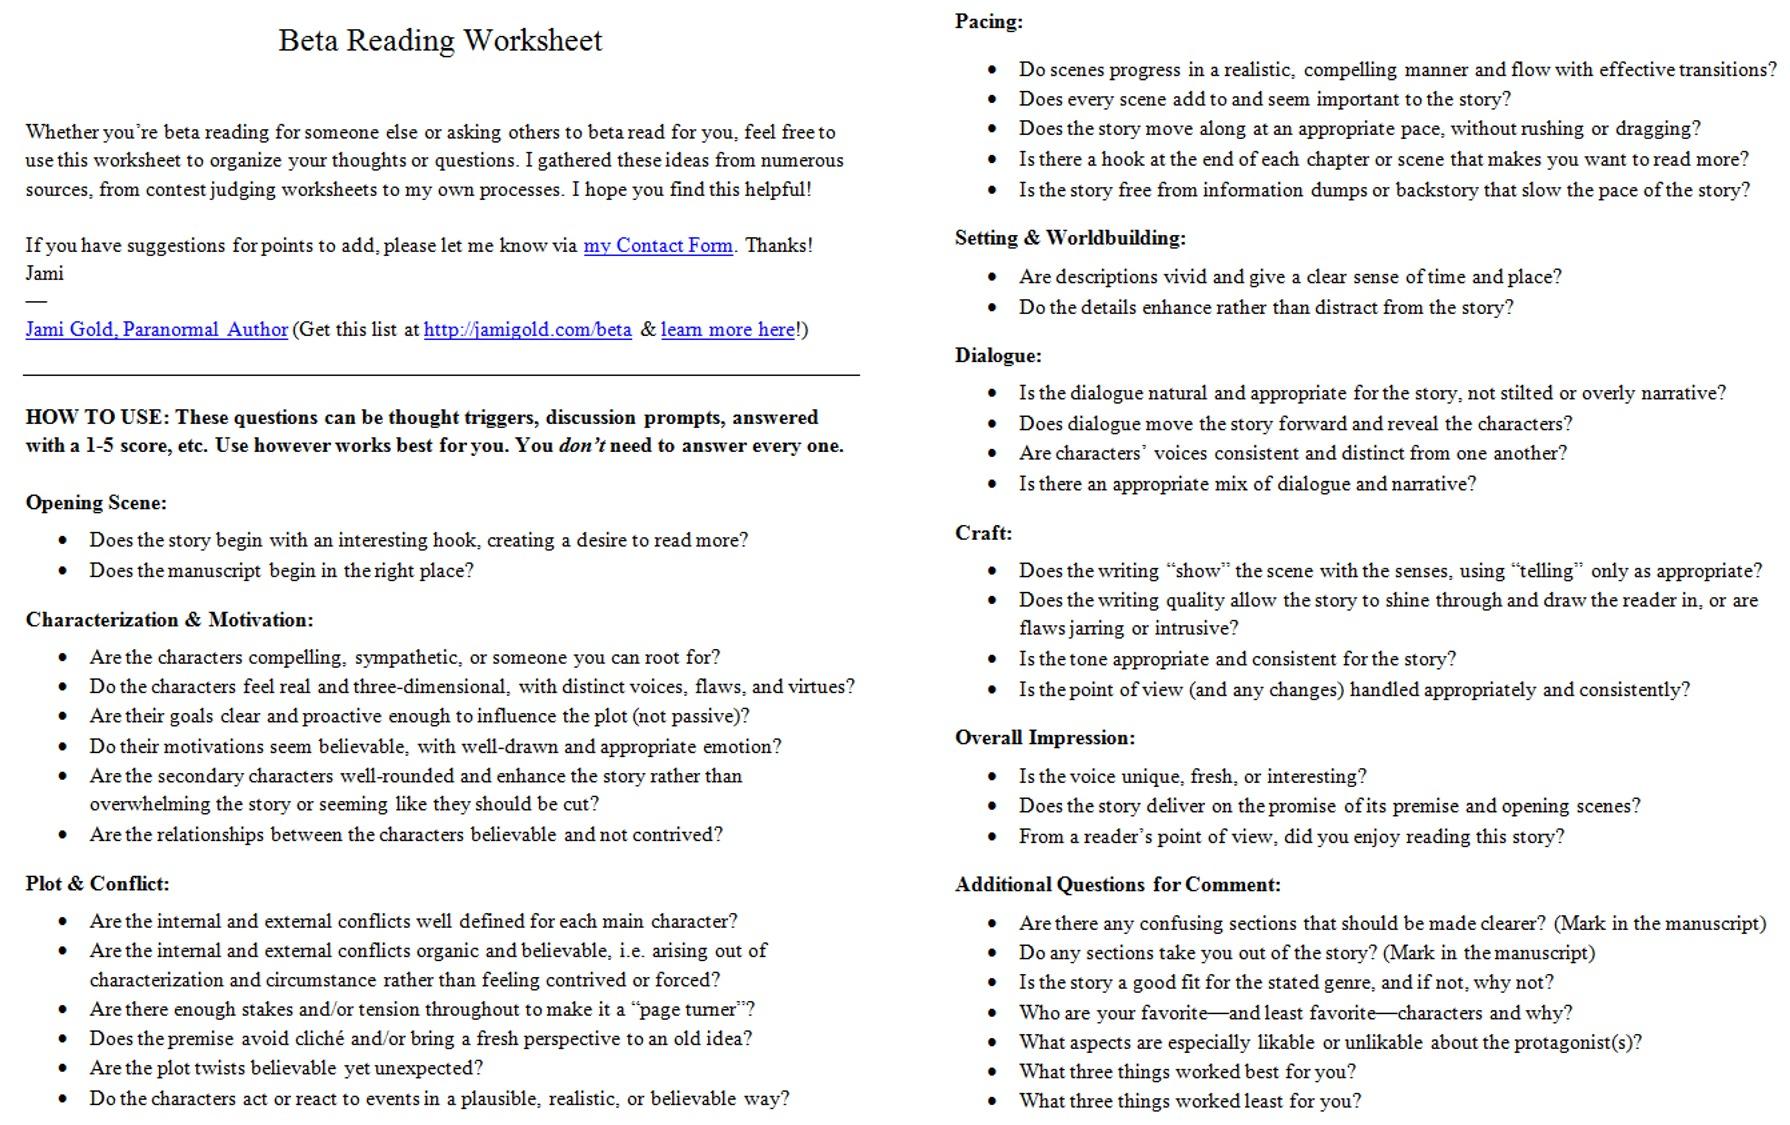 Weirdmailus  Gorgeous Worksheets For Writers  Jami Gold Paranormal Author With Heavenly Screen Shot Of The Twopage Beta Reading Worksheet With Amazing Exponential Worksheet Also James And The Giant Peach Worksheets In Addition Syntax Worksheets And Sh Digraph Worksheets As Well As Of Mice And Men Worksheet Additionally Ionic Or Covalent Worksheet From Jamigoldcom With Weirdmailus  Heavenly Worksheets For Writers  Jami Gold Paranormal Author With Amazing Screen Shot Of The Twopage Beta Reading Worksheet And Gorgeous Exponential Worksheet Also James And The Giant Peach Worksheets In Addition Syntax Worksheets From Jamigoldcom